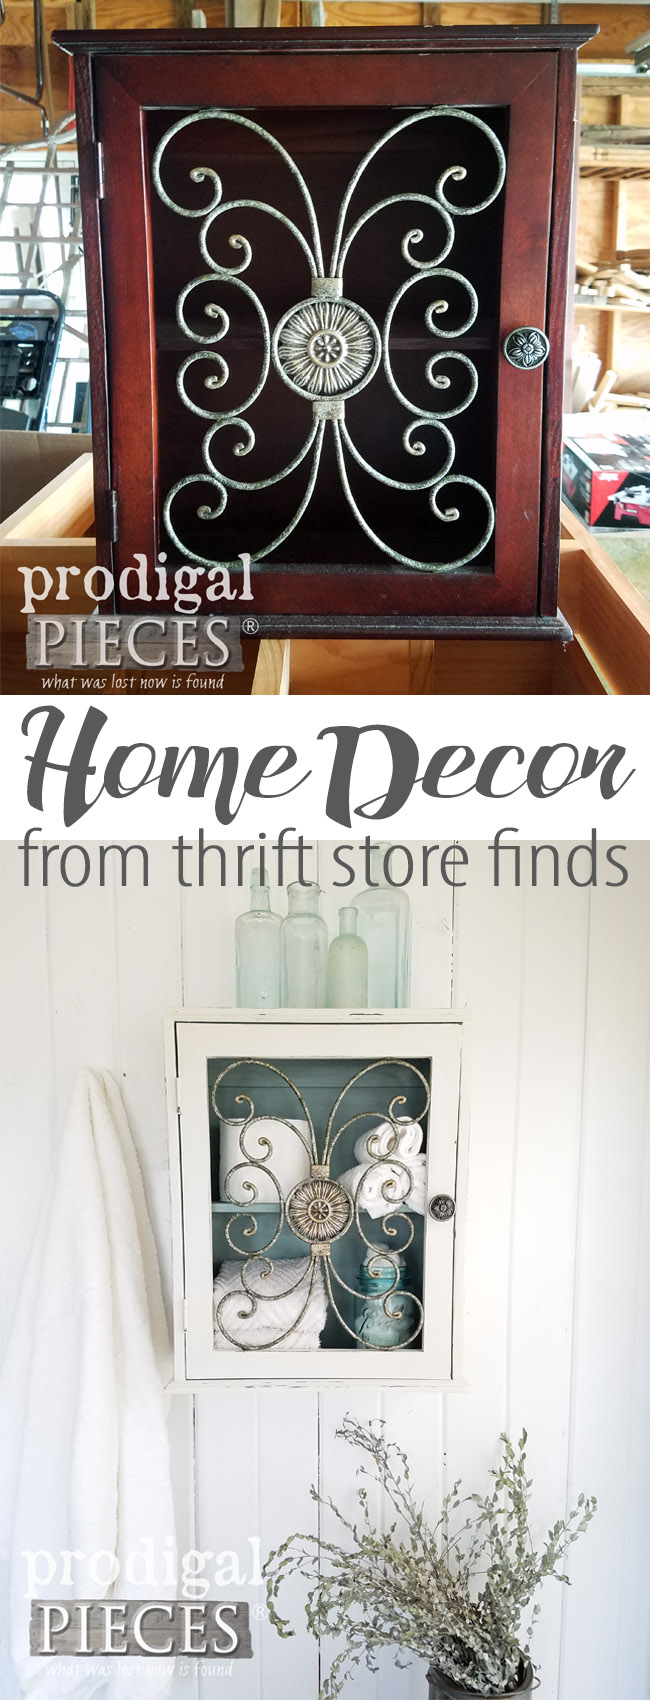 Do you want a new look in your home? Get your DIY on! It's affordable and easy with the right tools and information. Come see how Larissa of transformed this thrifted find. Tips & tricks to make your house your home. | Prodigal Pieces | prodigalpieces.com